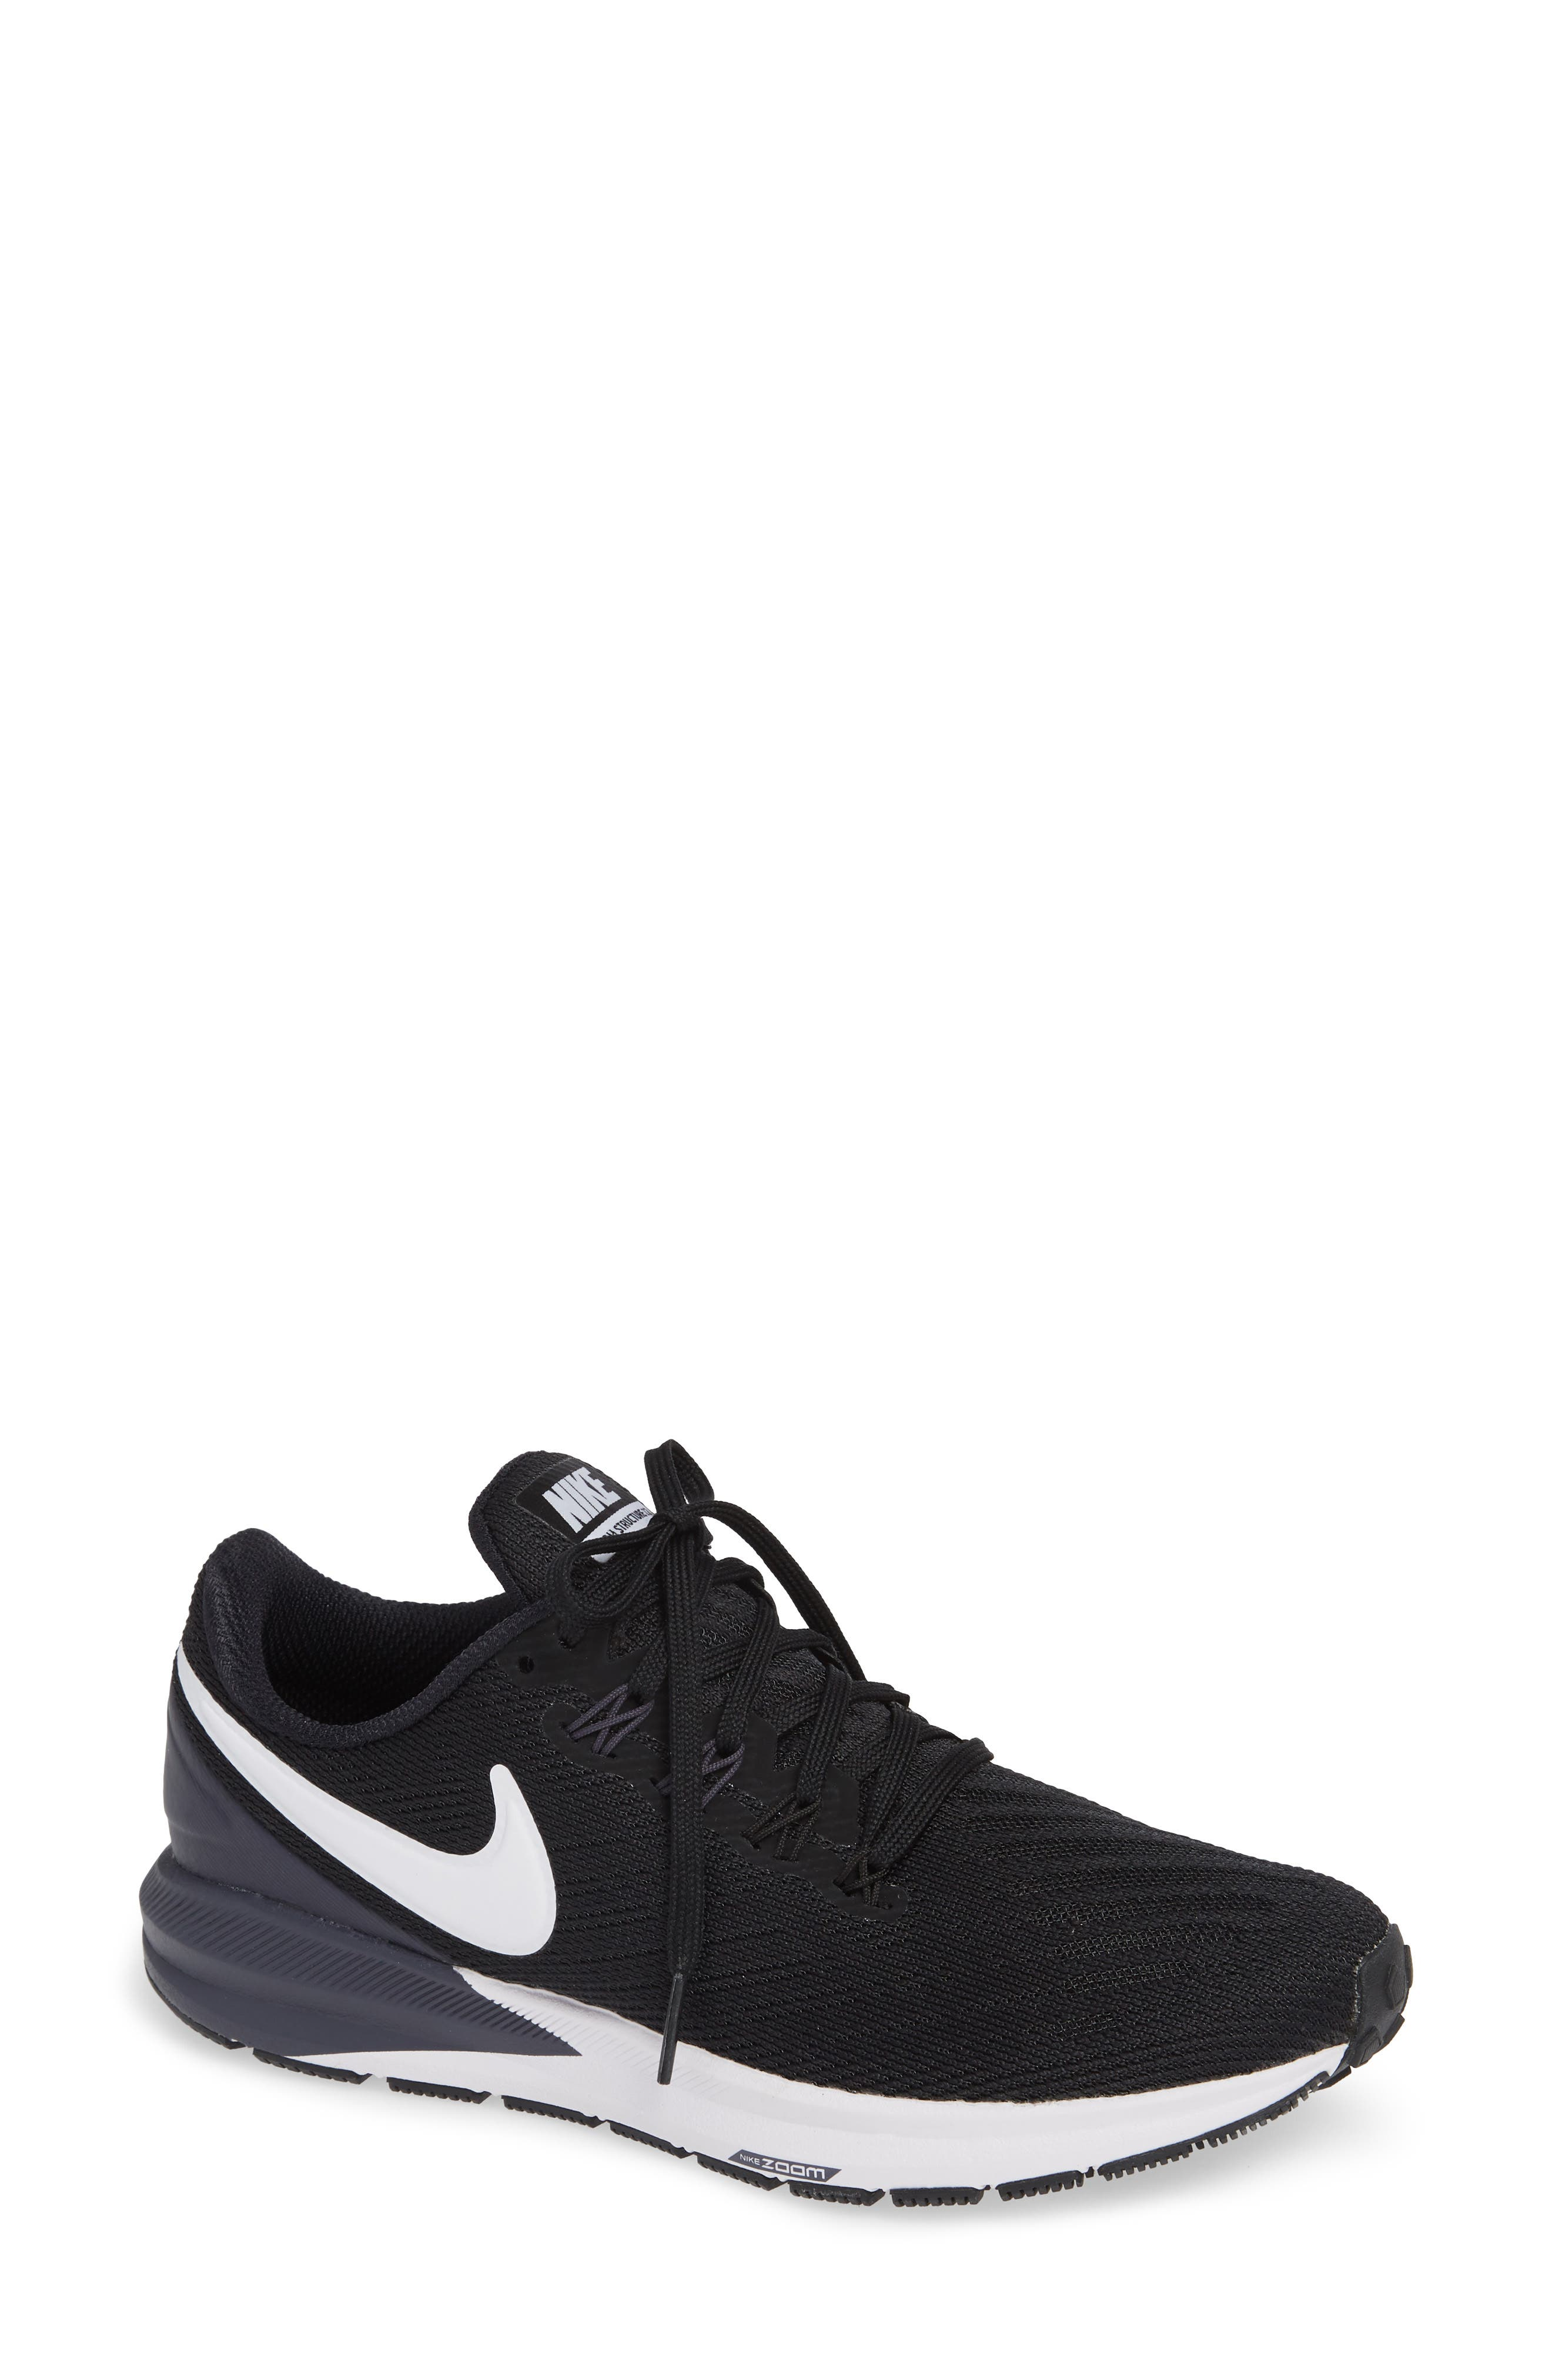 Air Zoom Structure 22 Sneaker,                             Main thumbnail 1, color,                             002